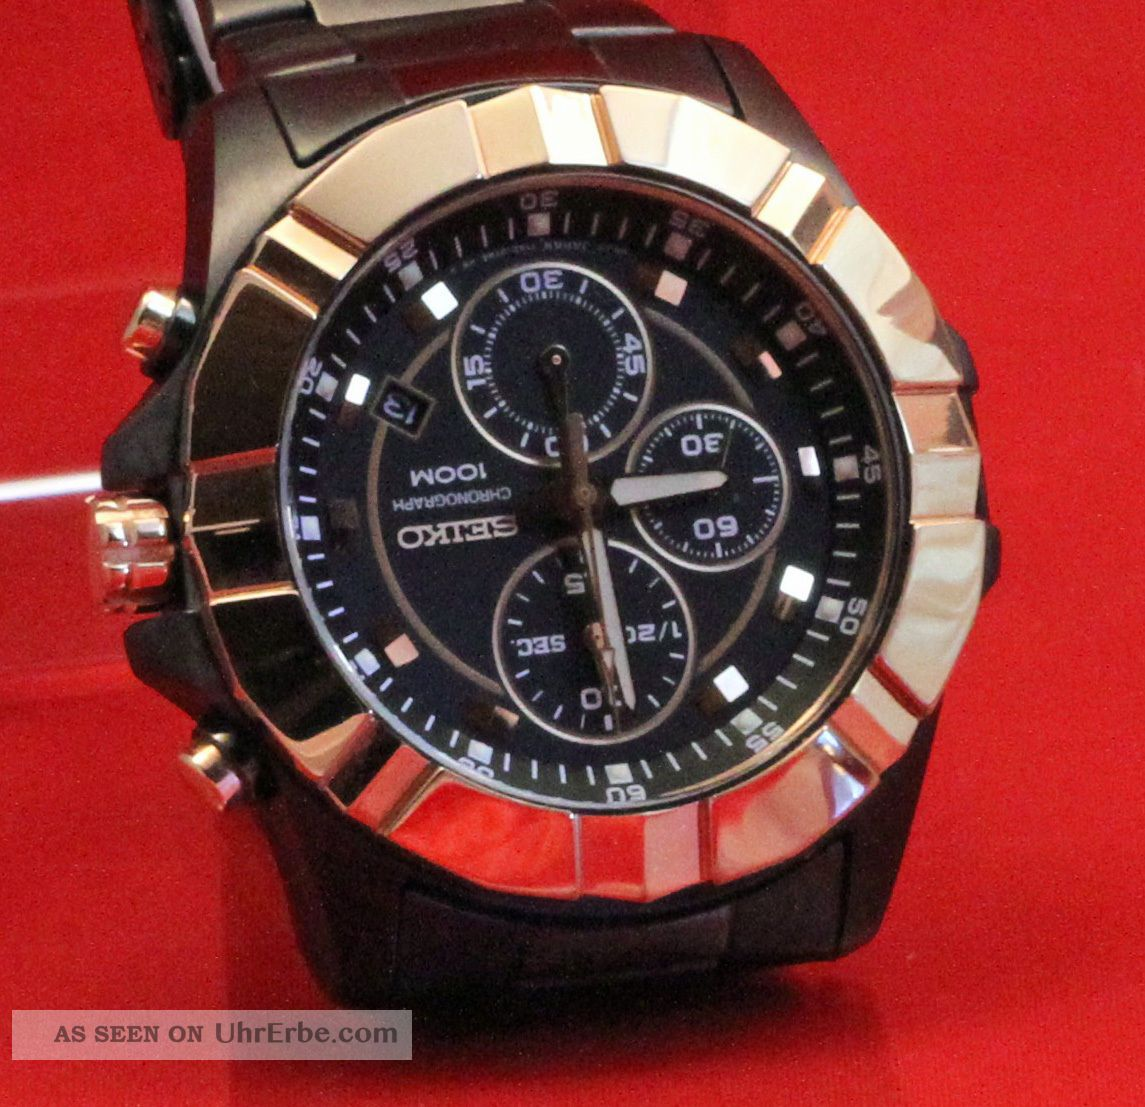 Seiko Lord Chrono In Gunmetal Black / Gold Sndd78p1 Armbanduhren Bild